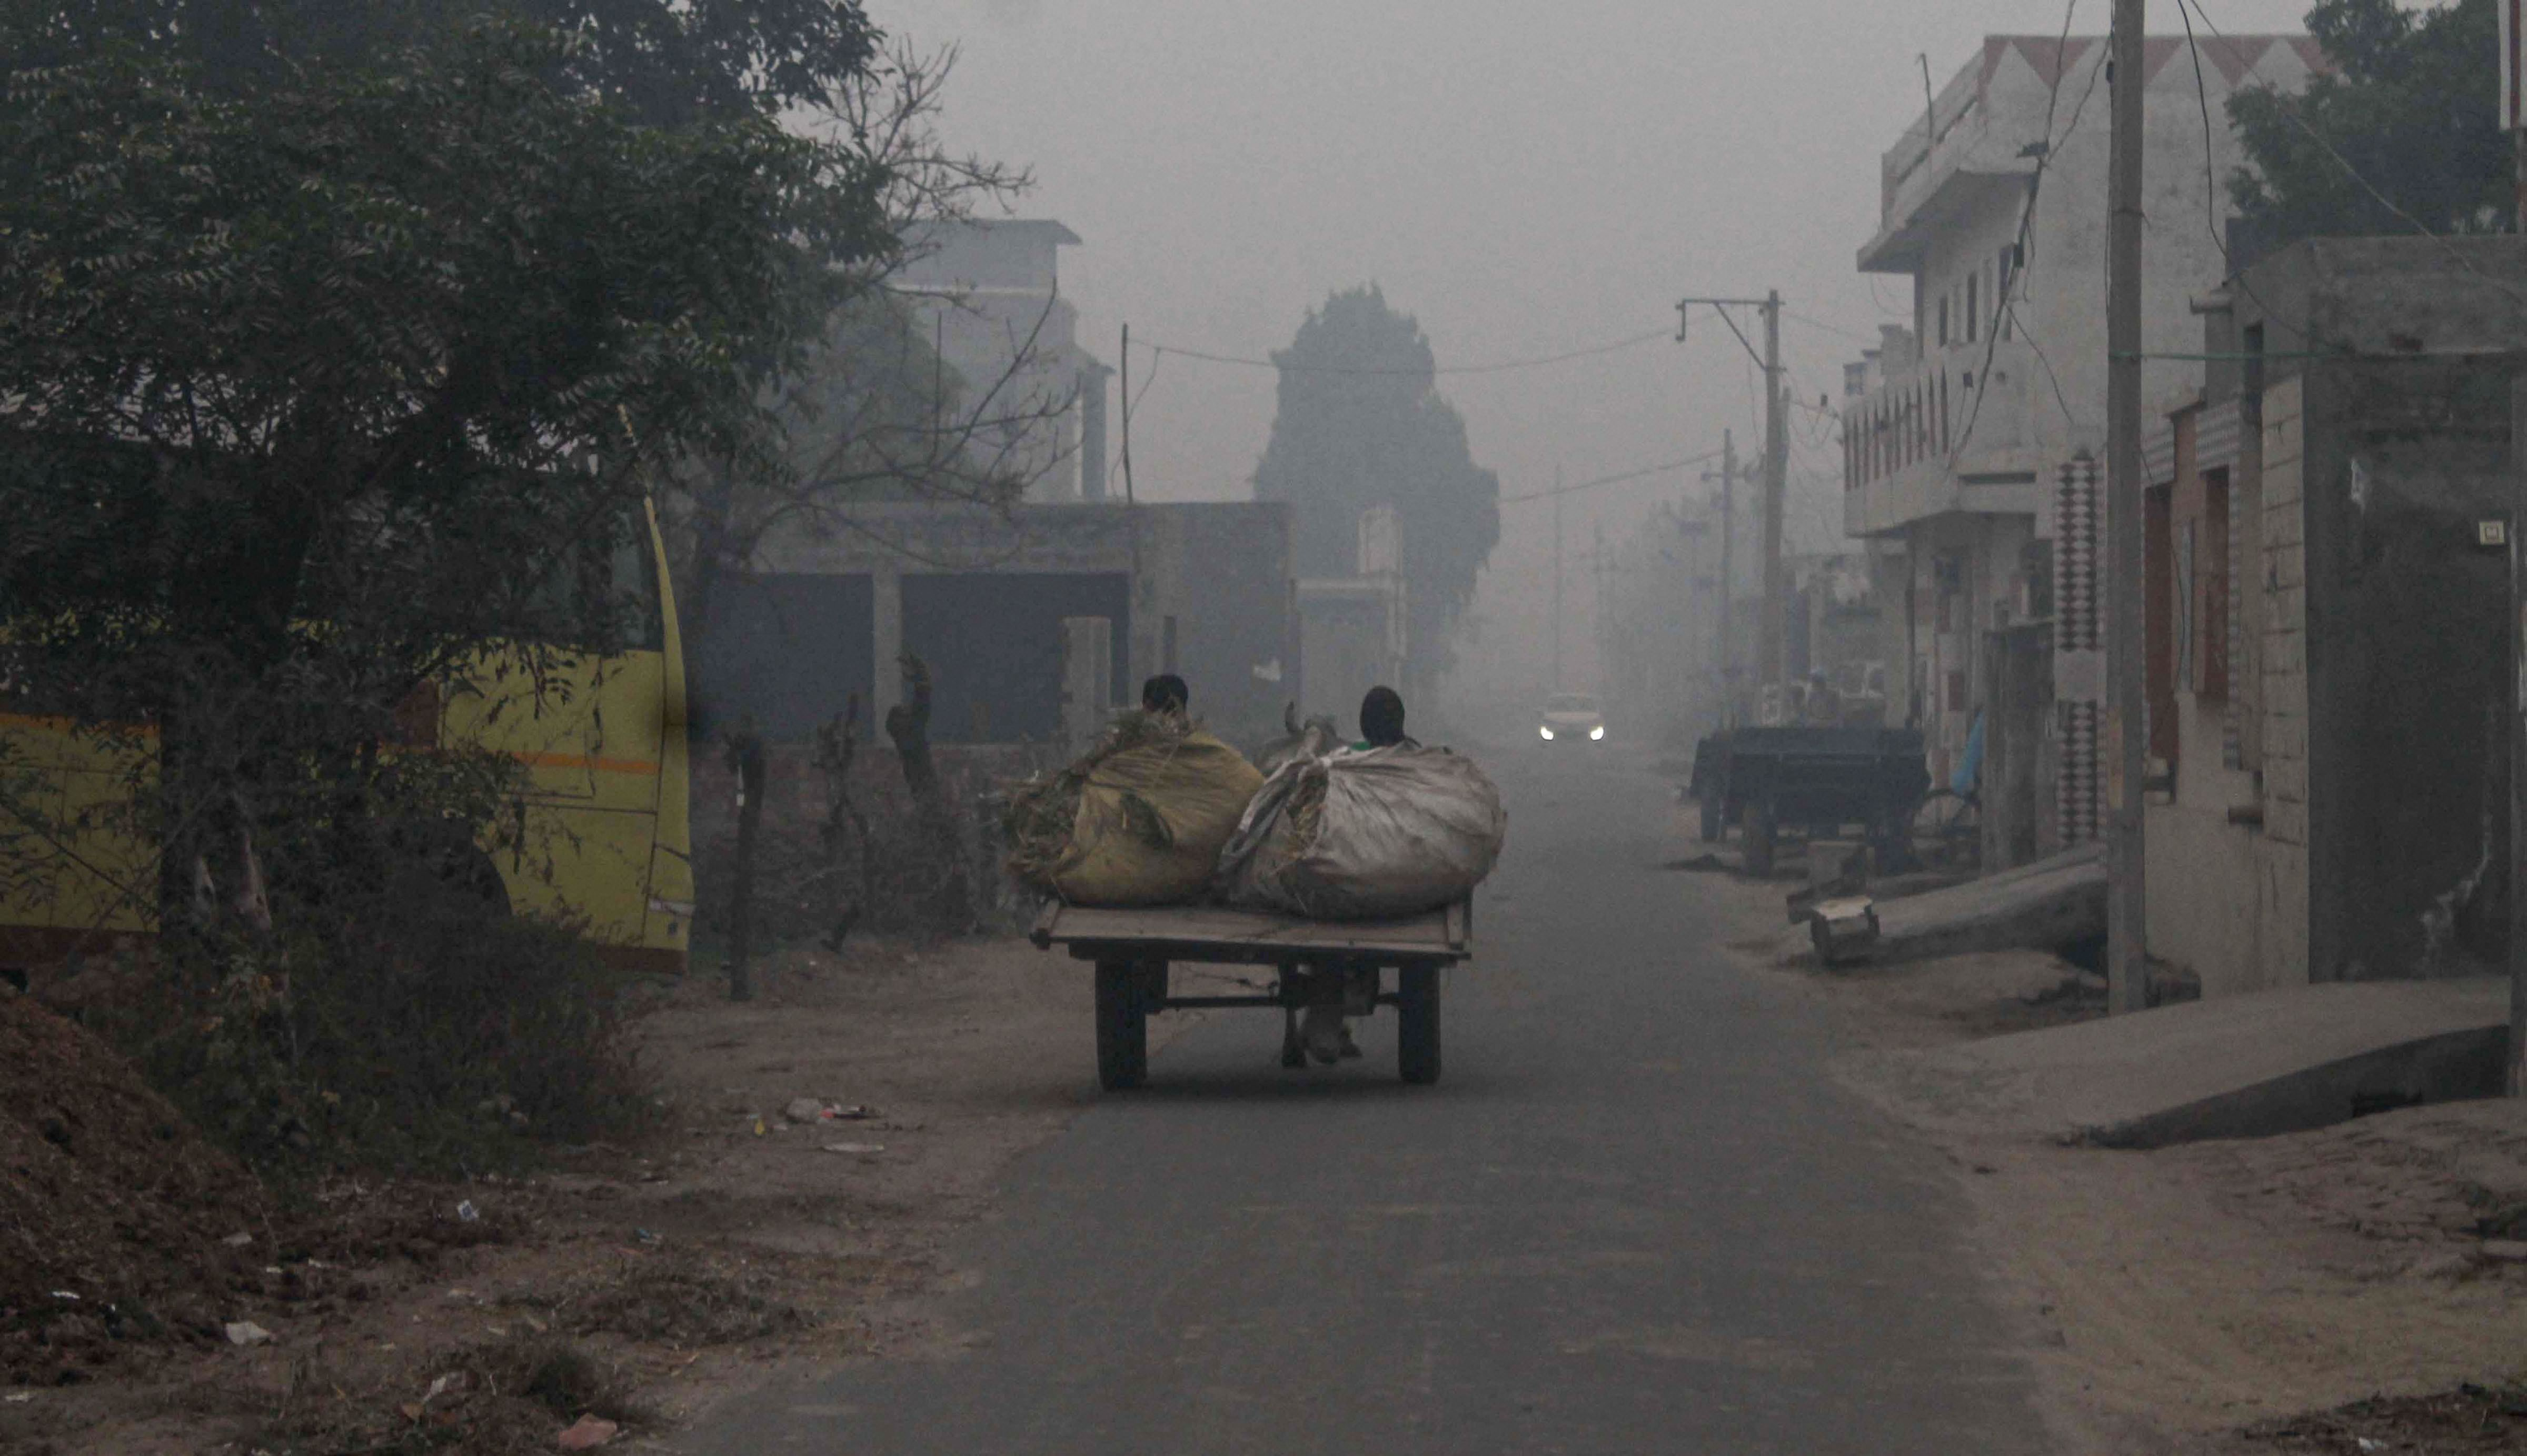 A view of the Dhuri area shrouded in smog in Sangrur district, Saturday, November 2, 2019